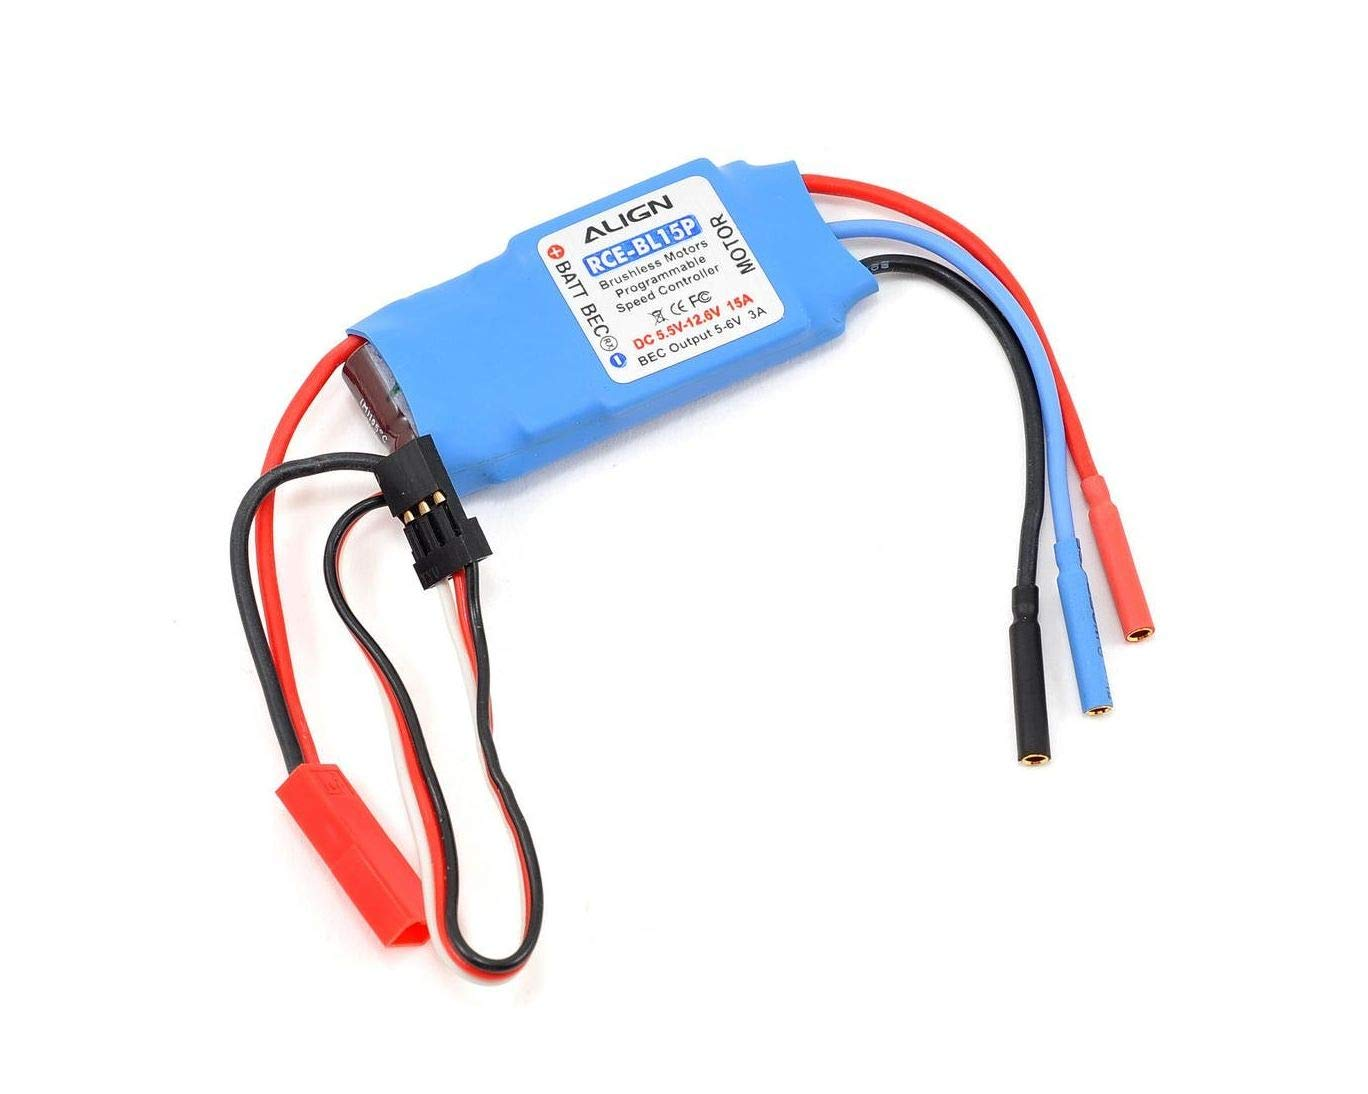 ALHES15P01 AGNHES15P01 RCE-BL15P Brushless ESC w El Paso Mall Mode Governer H Manufacturer direct delivery